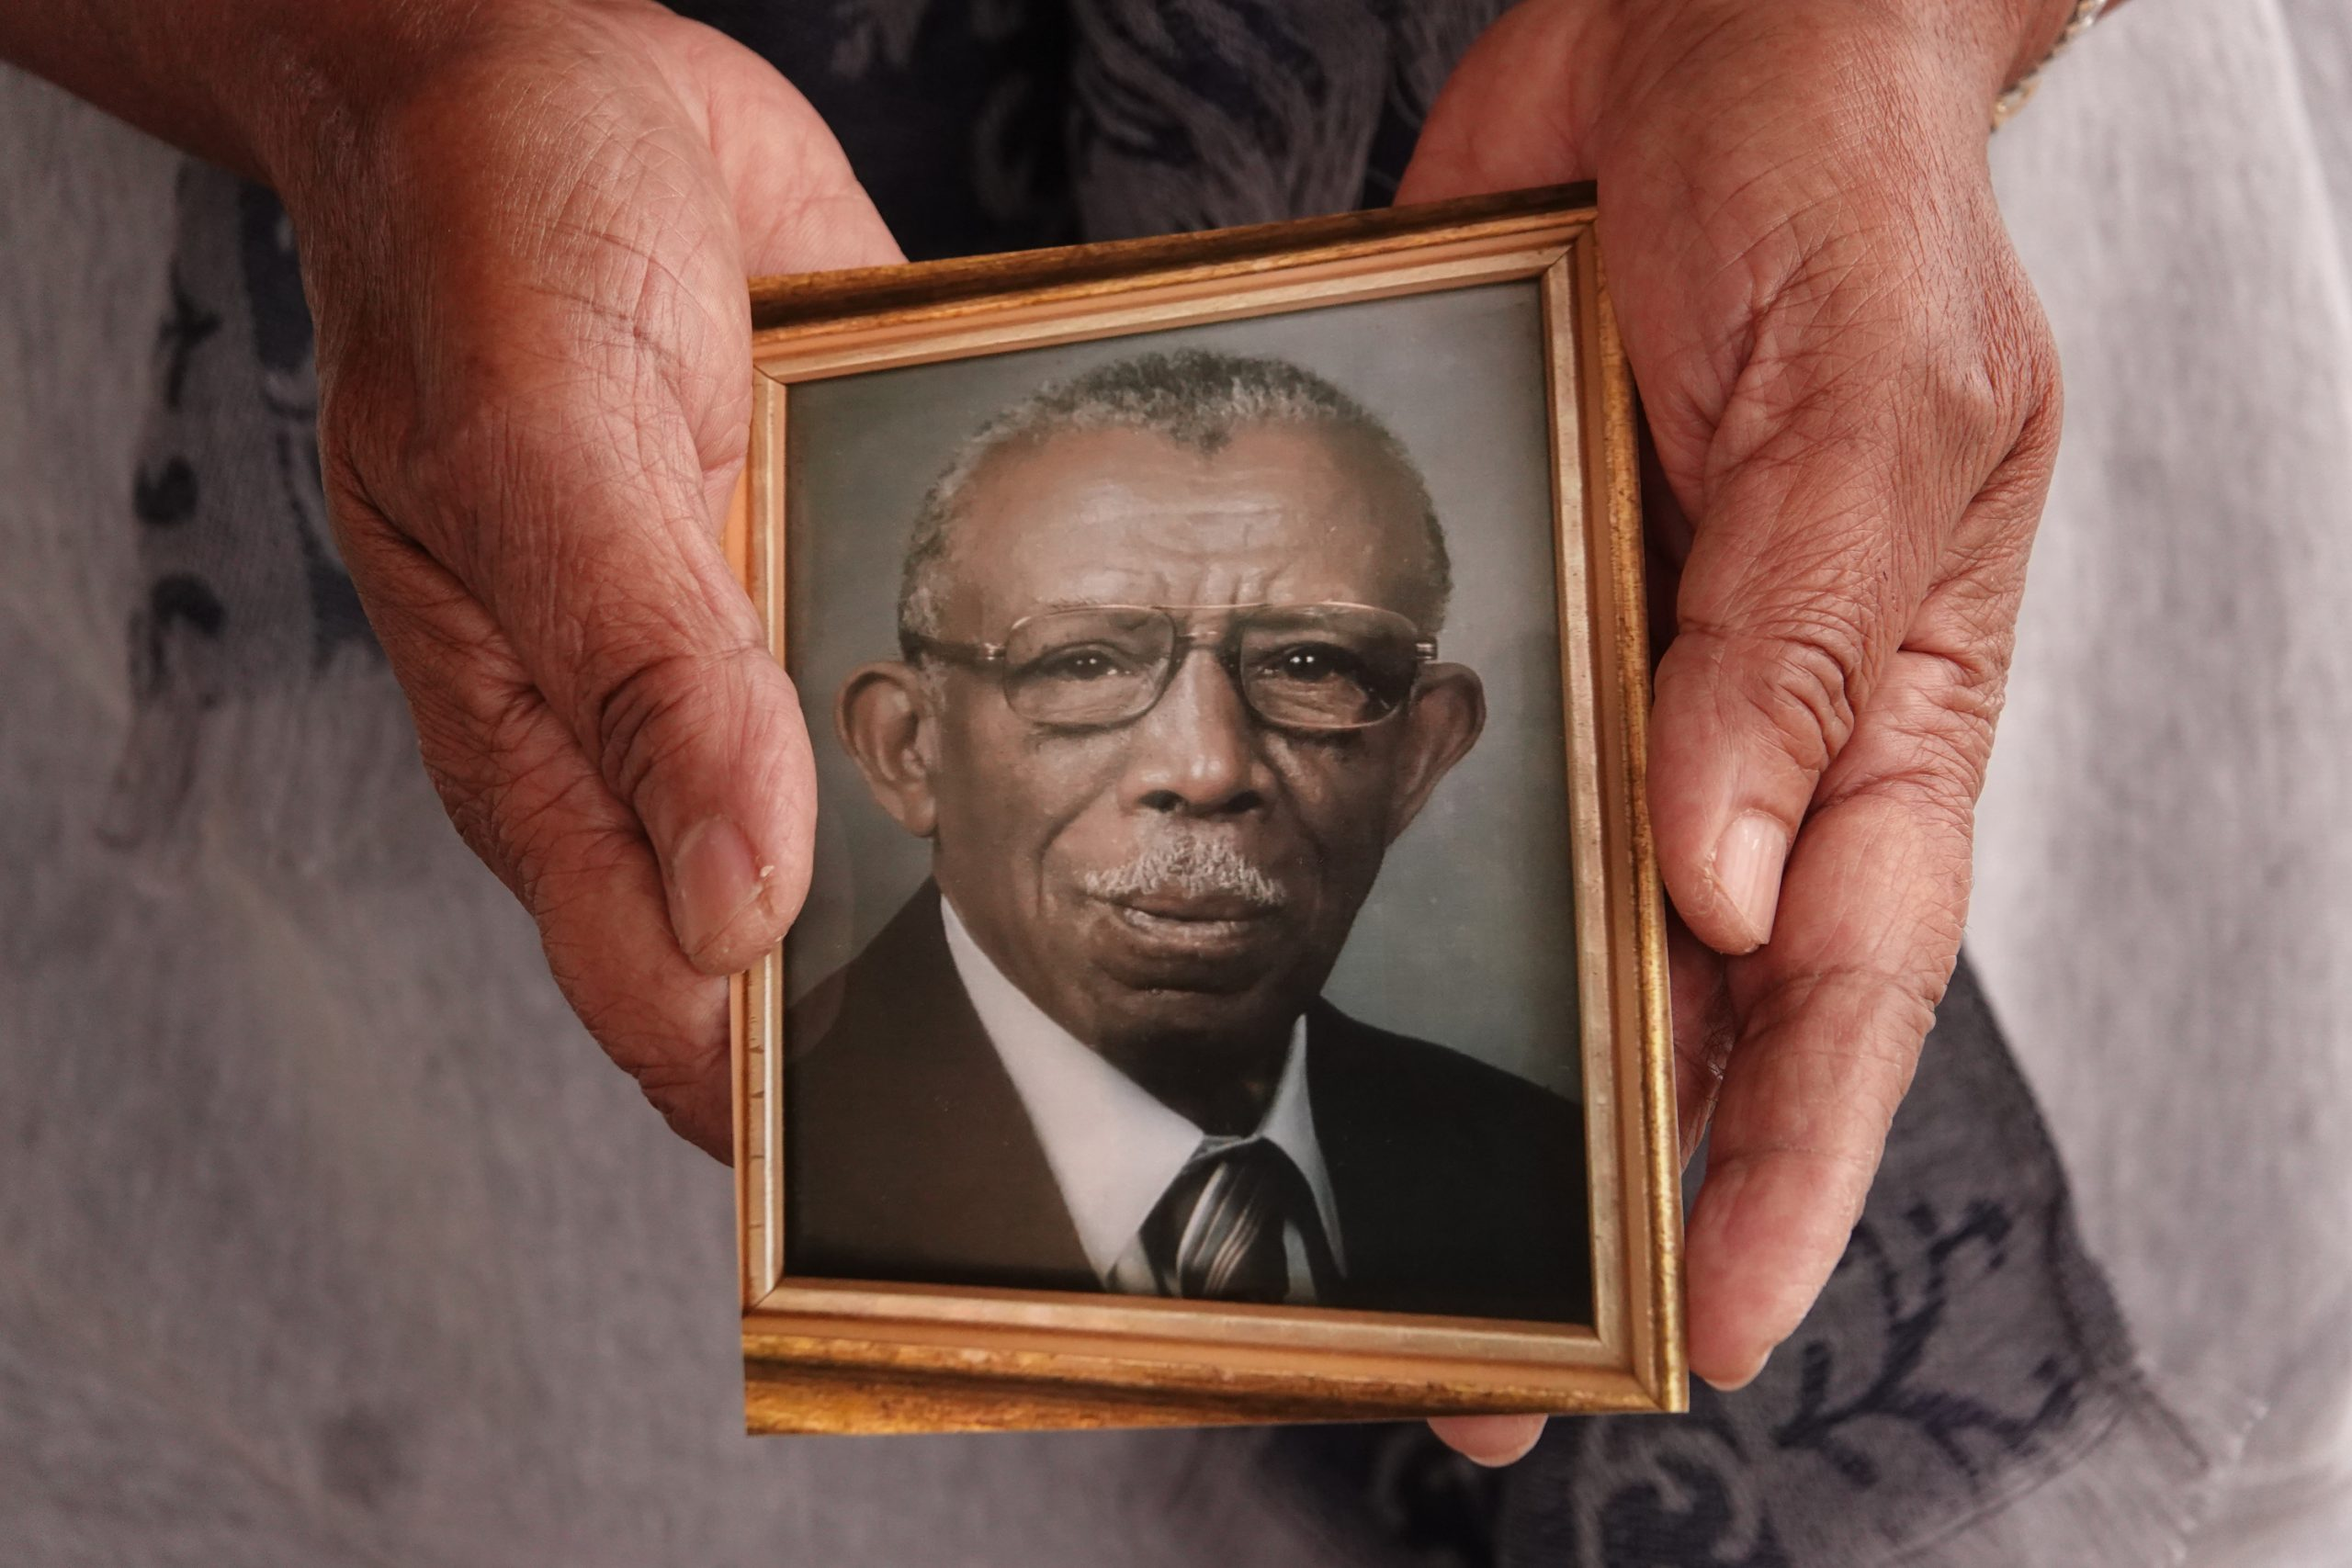 Joyce Christian of Somerville, Tennessee holds a photo of her father Freddie Lee Tyson. She is a retired nurse who wants to encourage people in the African American community to take the Covid-19 vaccine. Her father, was unknowingly a part of the Tuskegee syphilis study. What happened to her father, led to the establishment of biomedical ethics committees. These committees were established to set ethical criteria to ensure what happened to her fathers would not happen again. (Photo by © Karen Pulfer Focht)